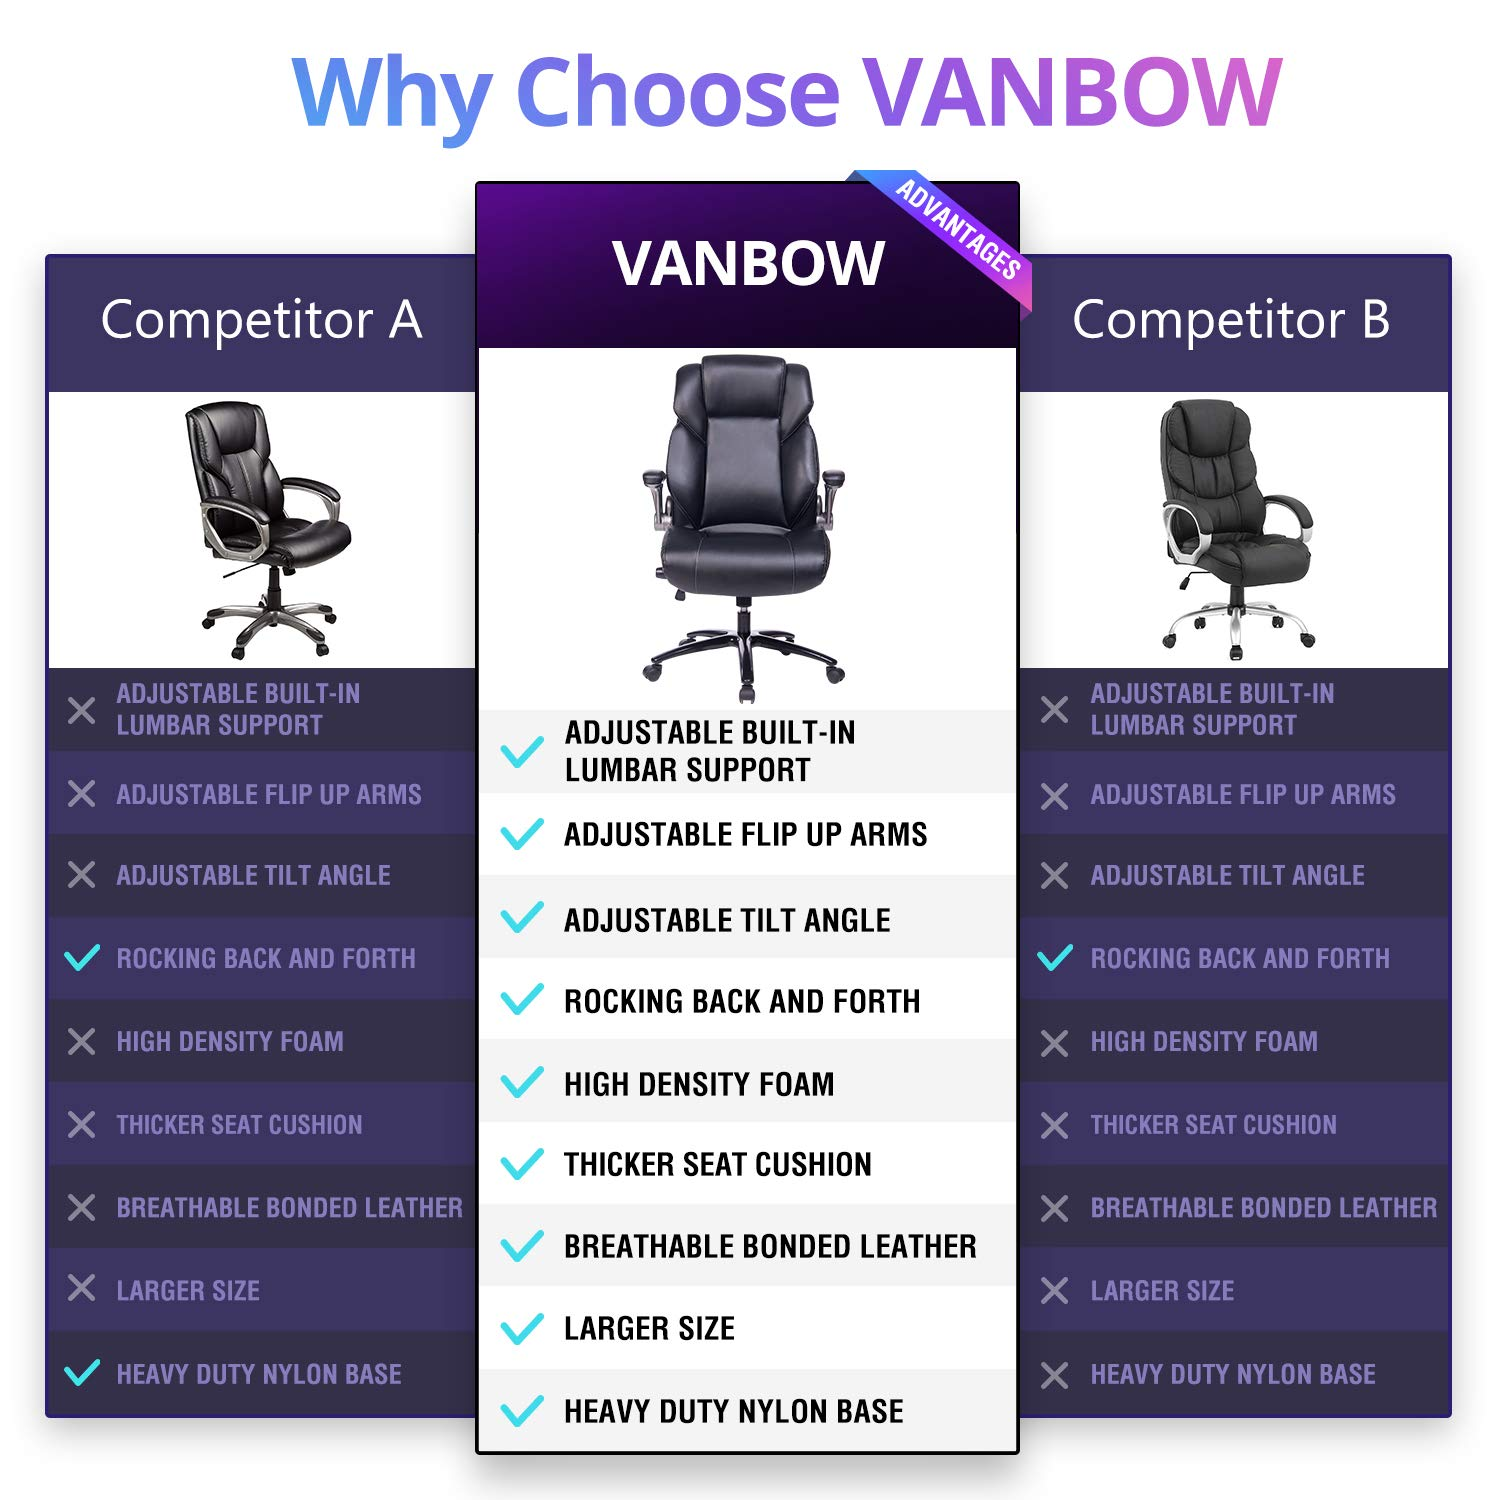 VANBOW Office Chair, Executive Computer Desk Task Swivel High Back Chair with Metal Base- Adjustable Built in Lumbar Support, Tilt Angle and Flip-Up Arms, Black by VANBOW (Image #4)